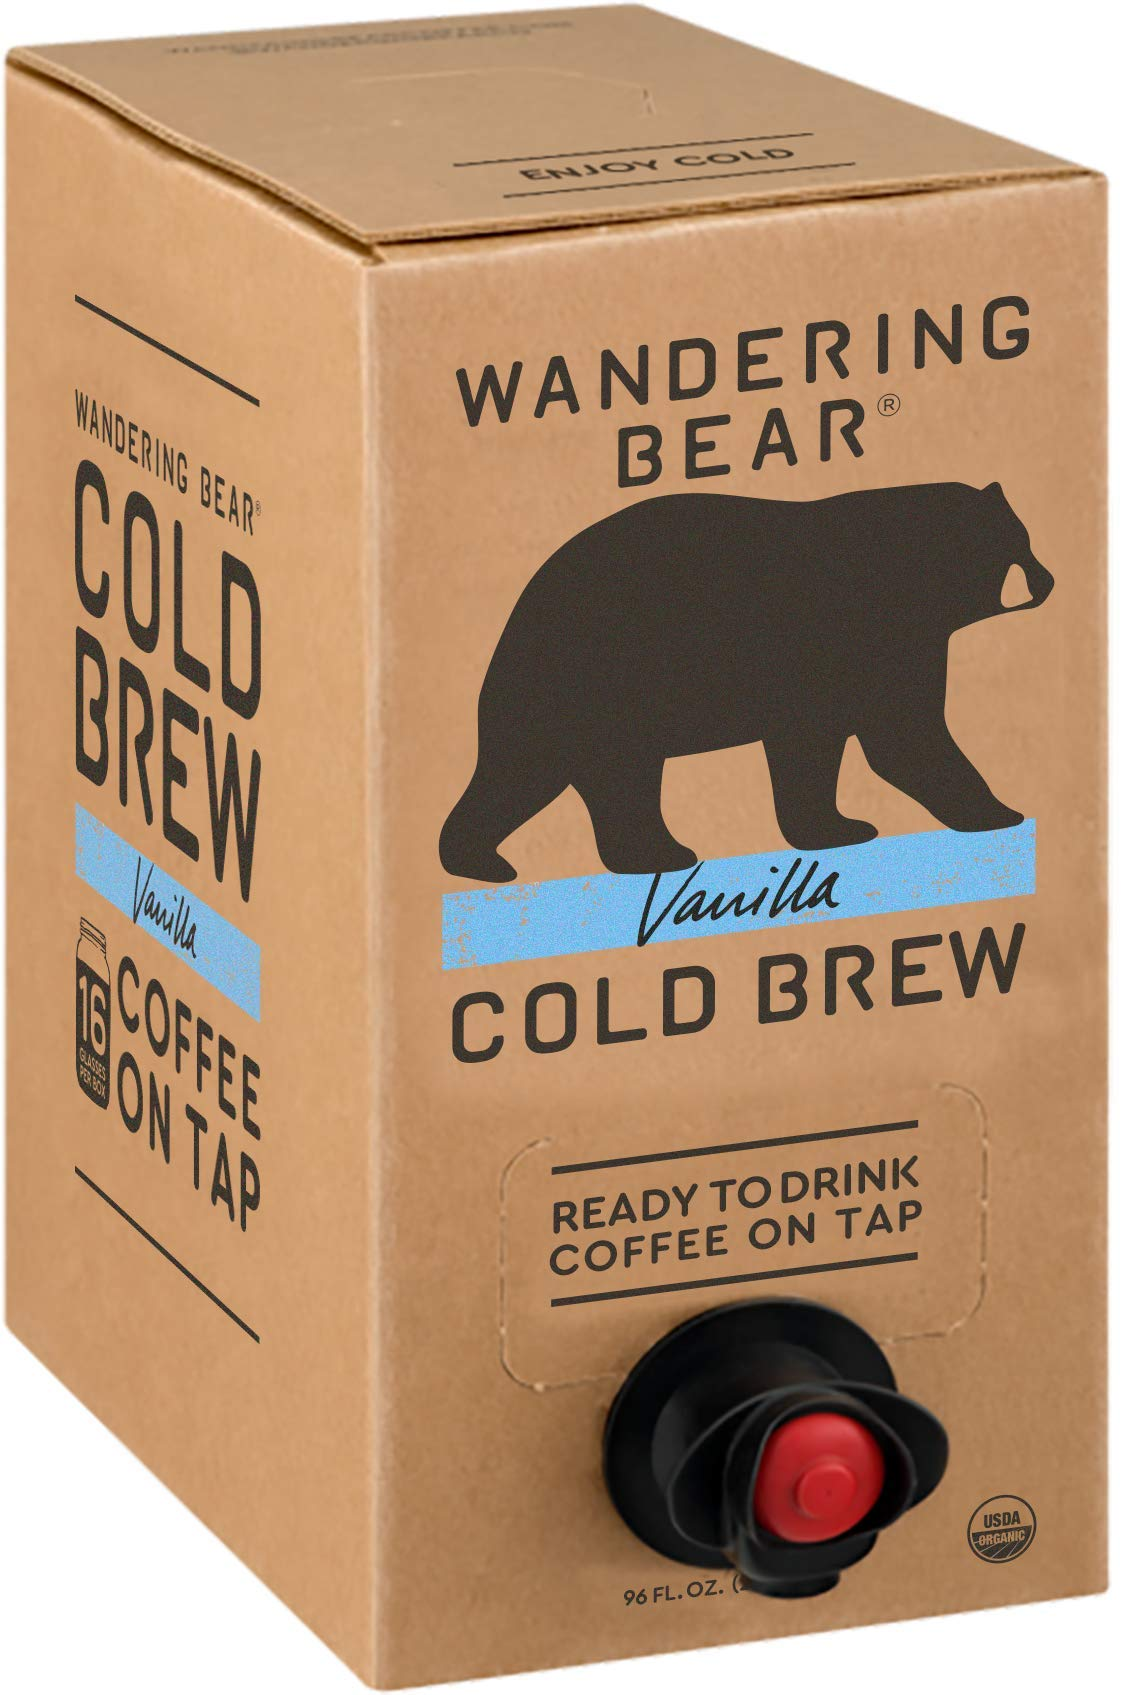 Wandering Bear Organic Cold Brew Coffee On Tap, Vanilla, No Sugar, Always Fresh and Ready to Drink, Not a Concentrate, 96 fl oz